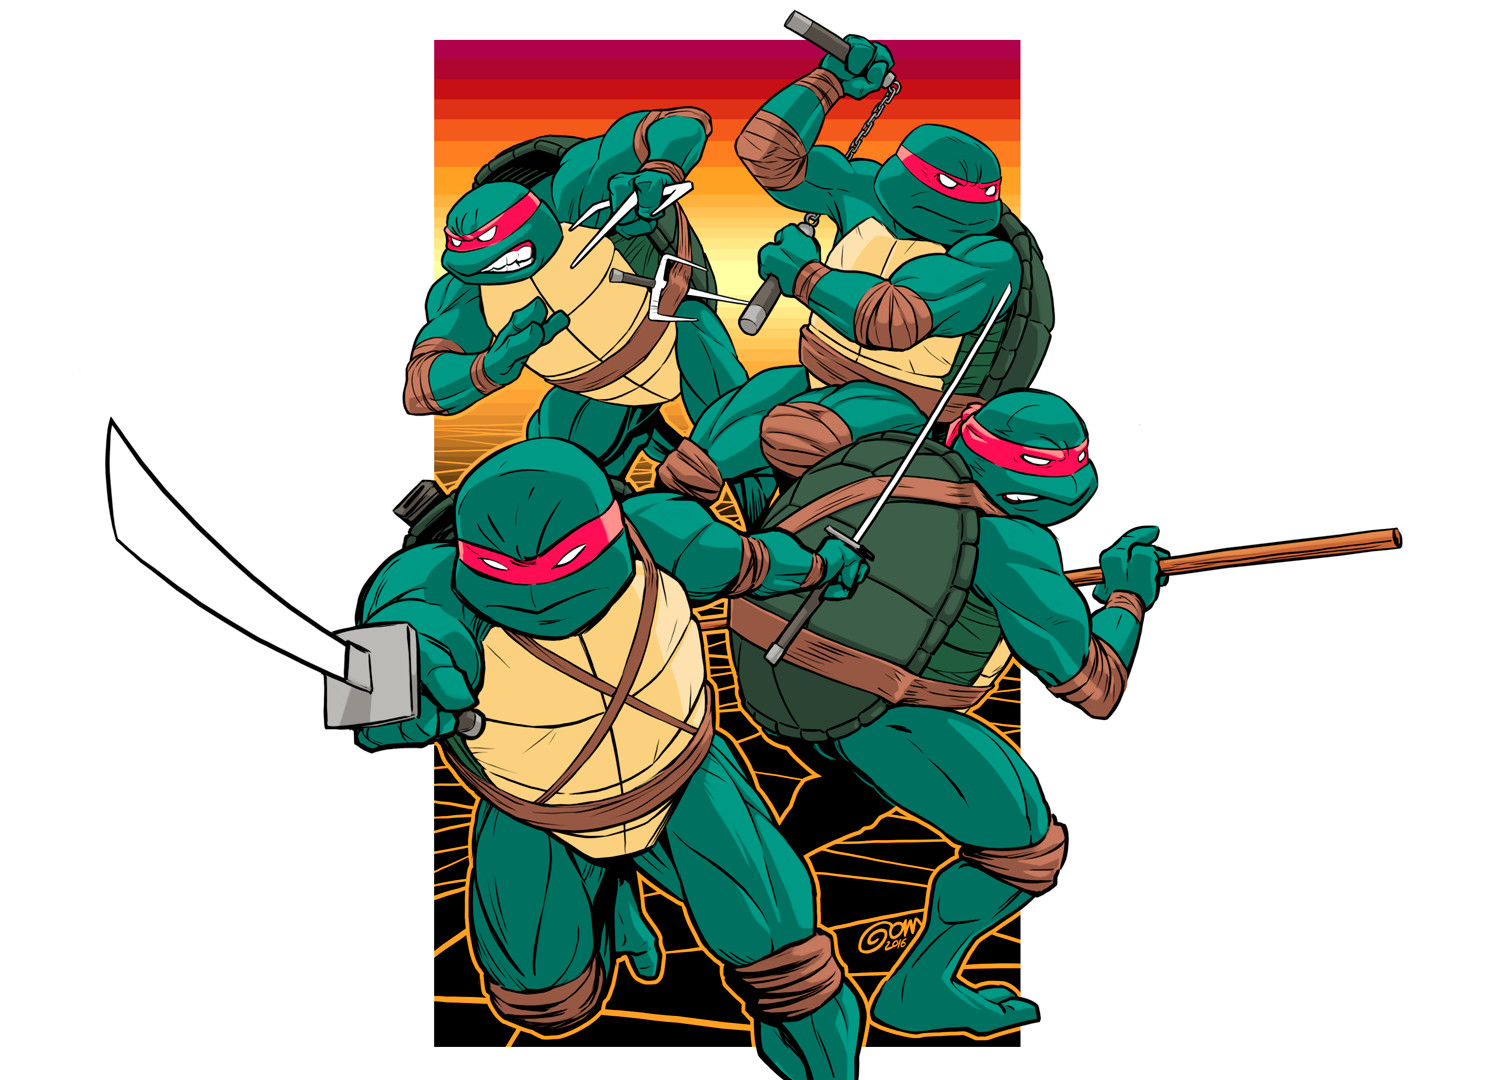 Guillaume gom poitel tmnt end5